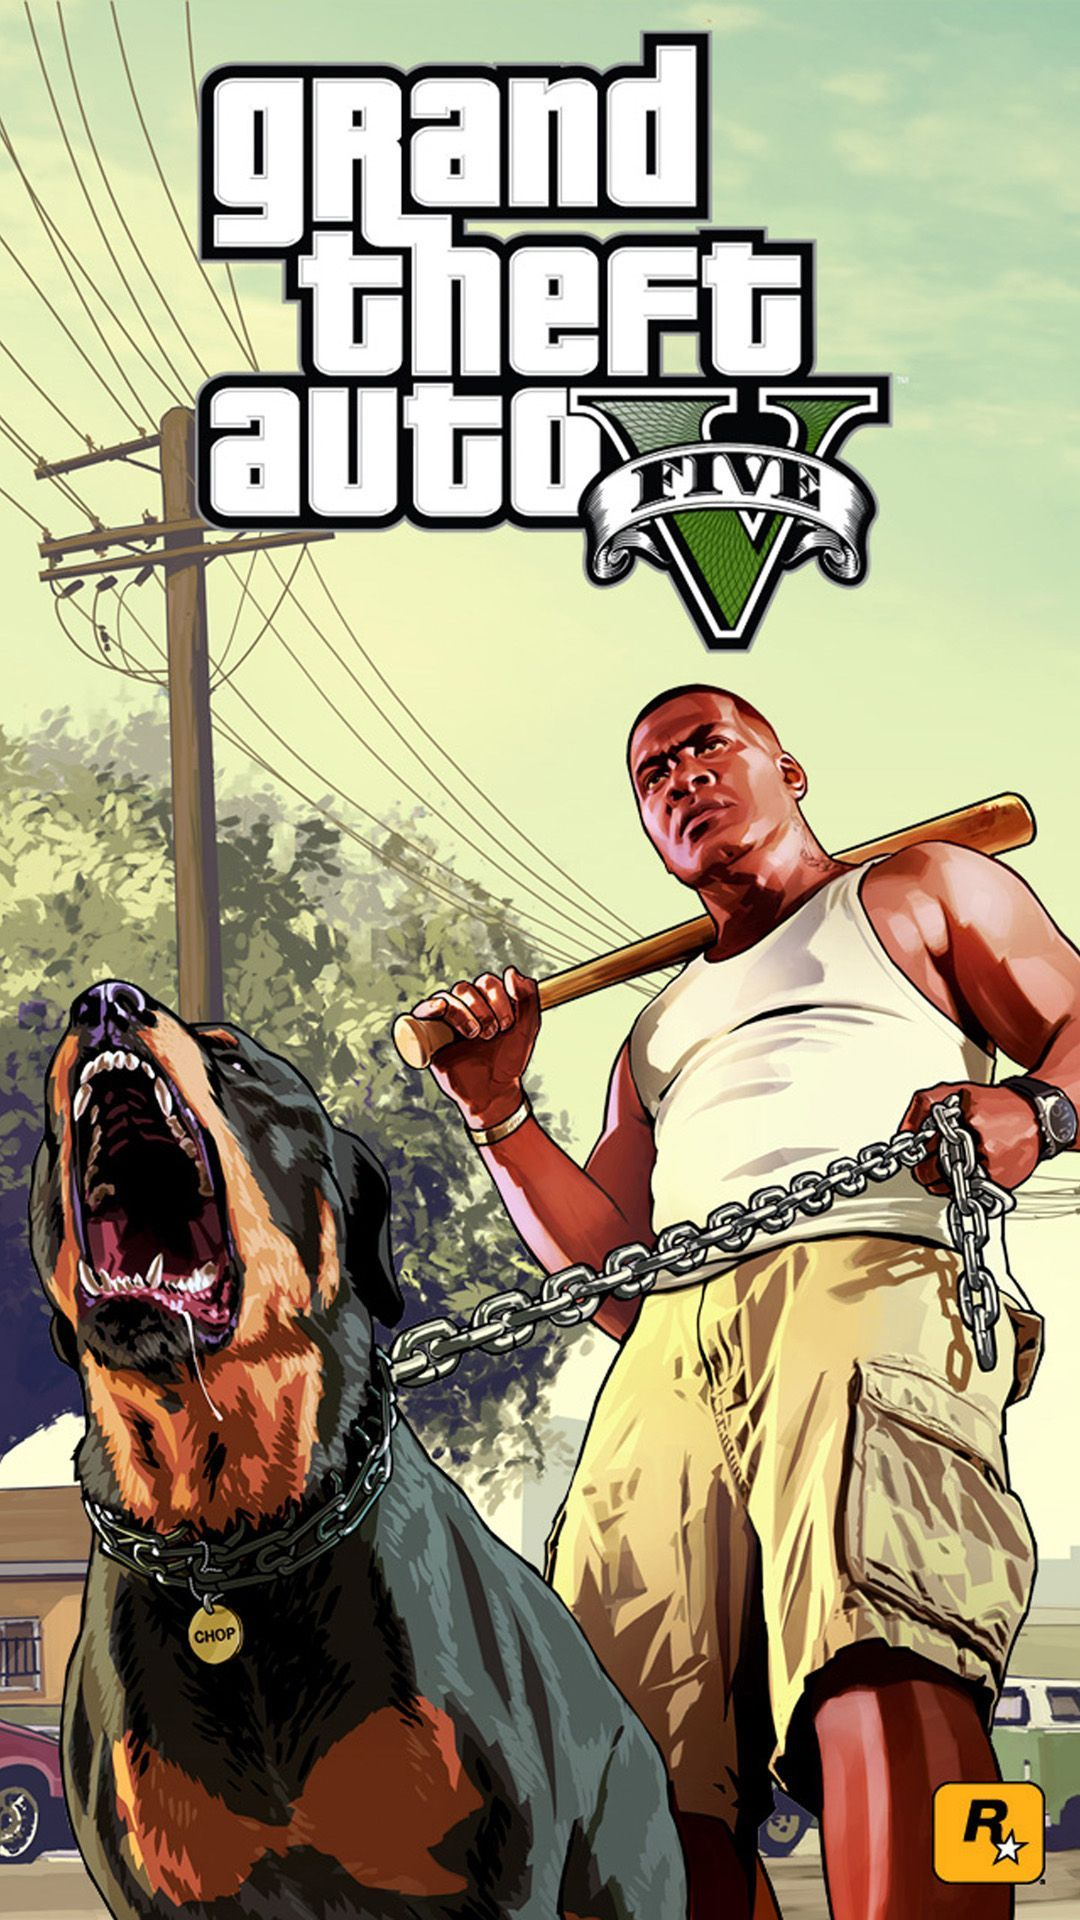 40 Gta 5 Franklin Wallpapers Download At Wallpaperbro In 2020 Grand Theft Auto Grand Theft Auto Artwork Grand Theft Auto Series